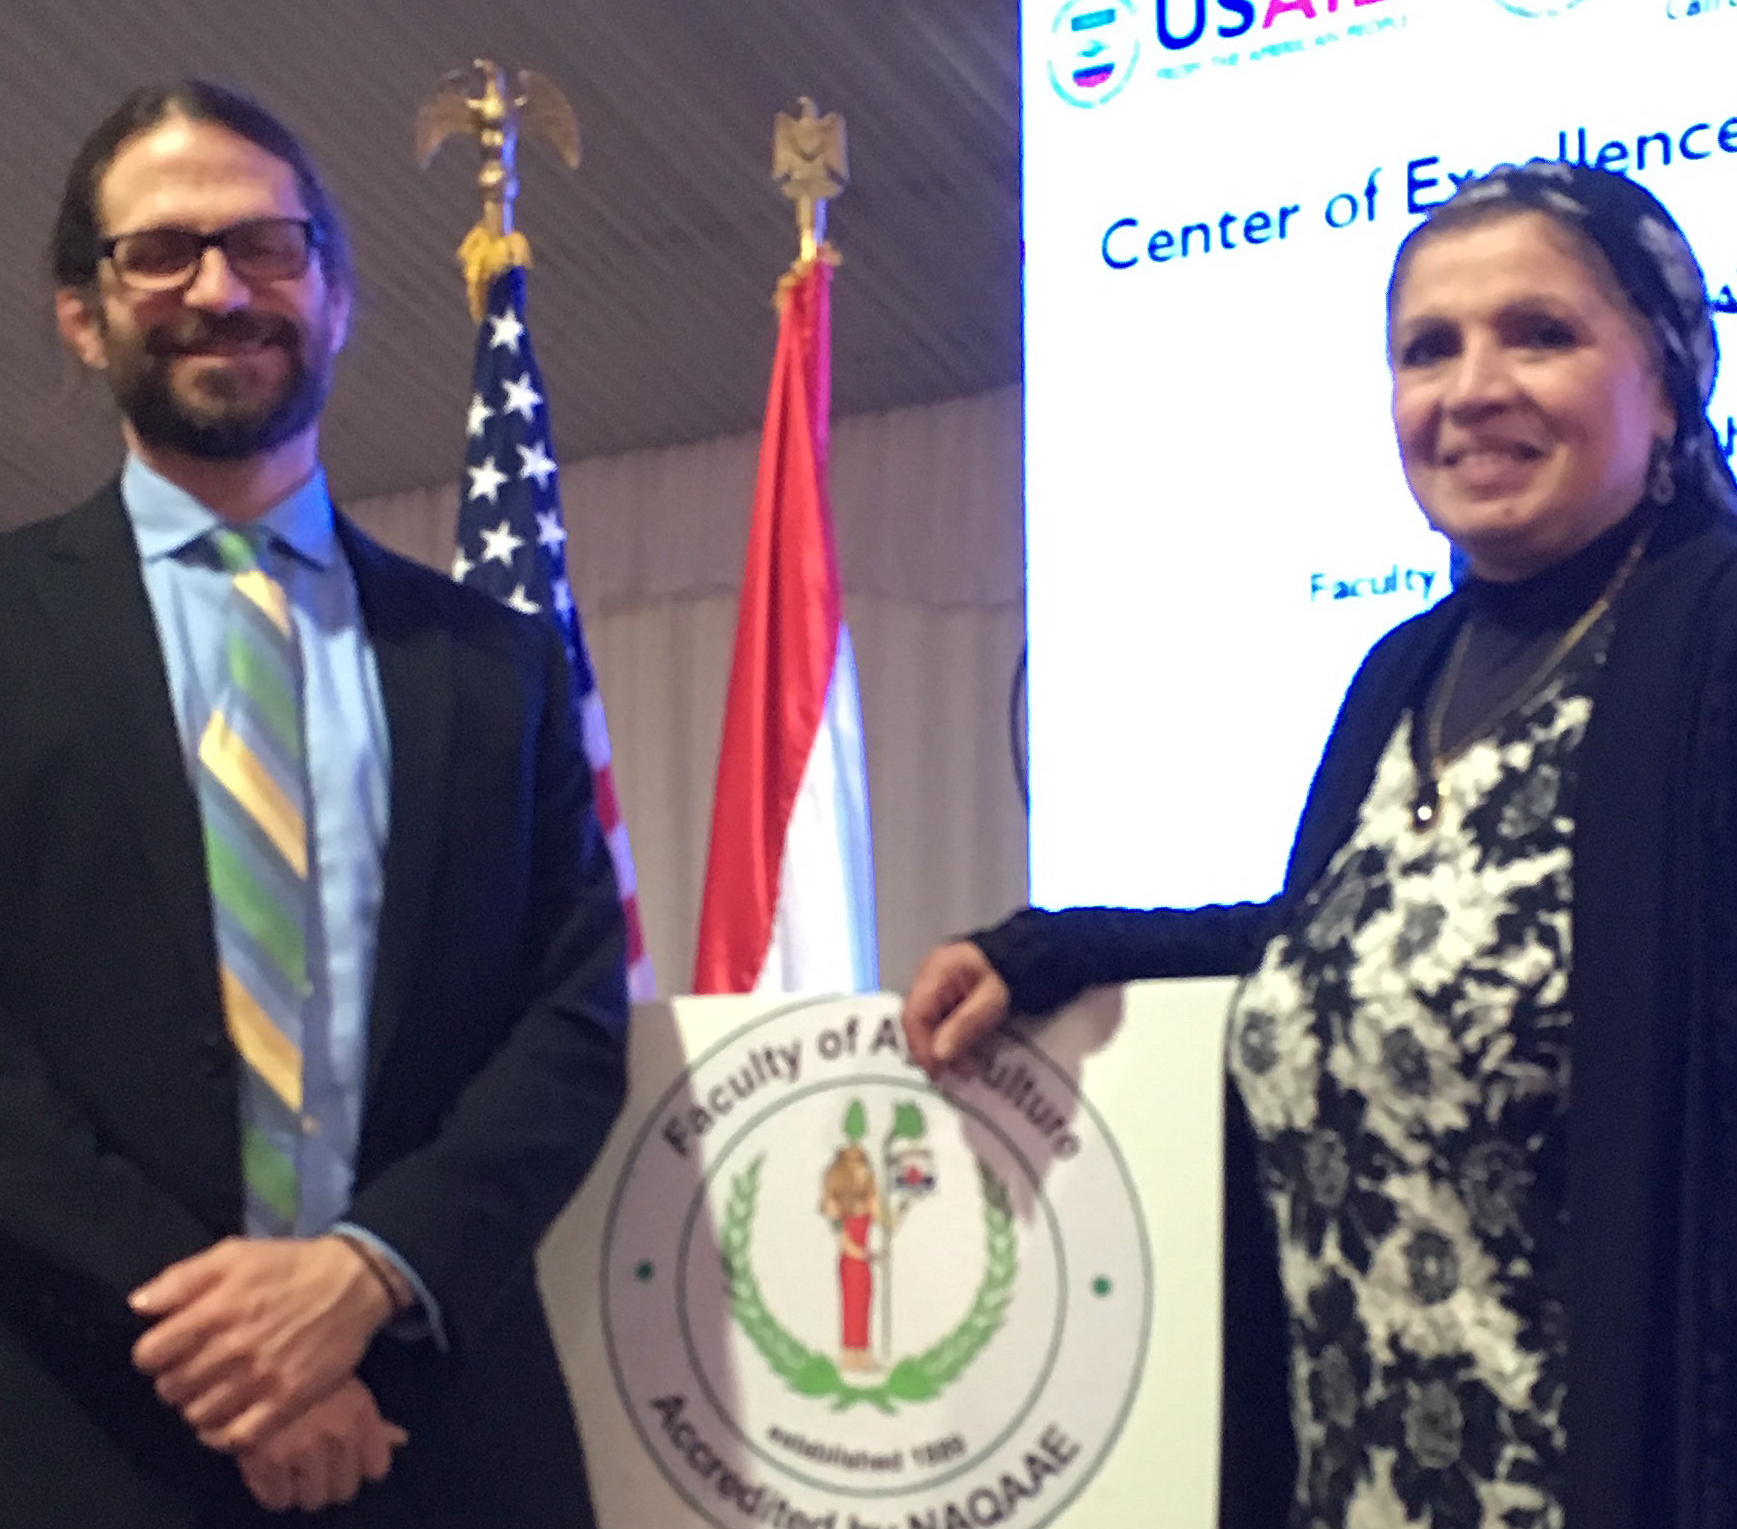 Paul Ebner with Cairo Official